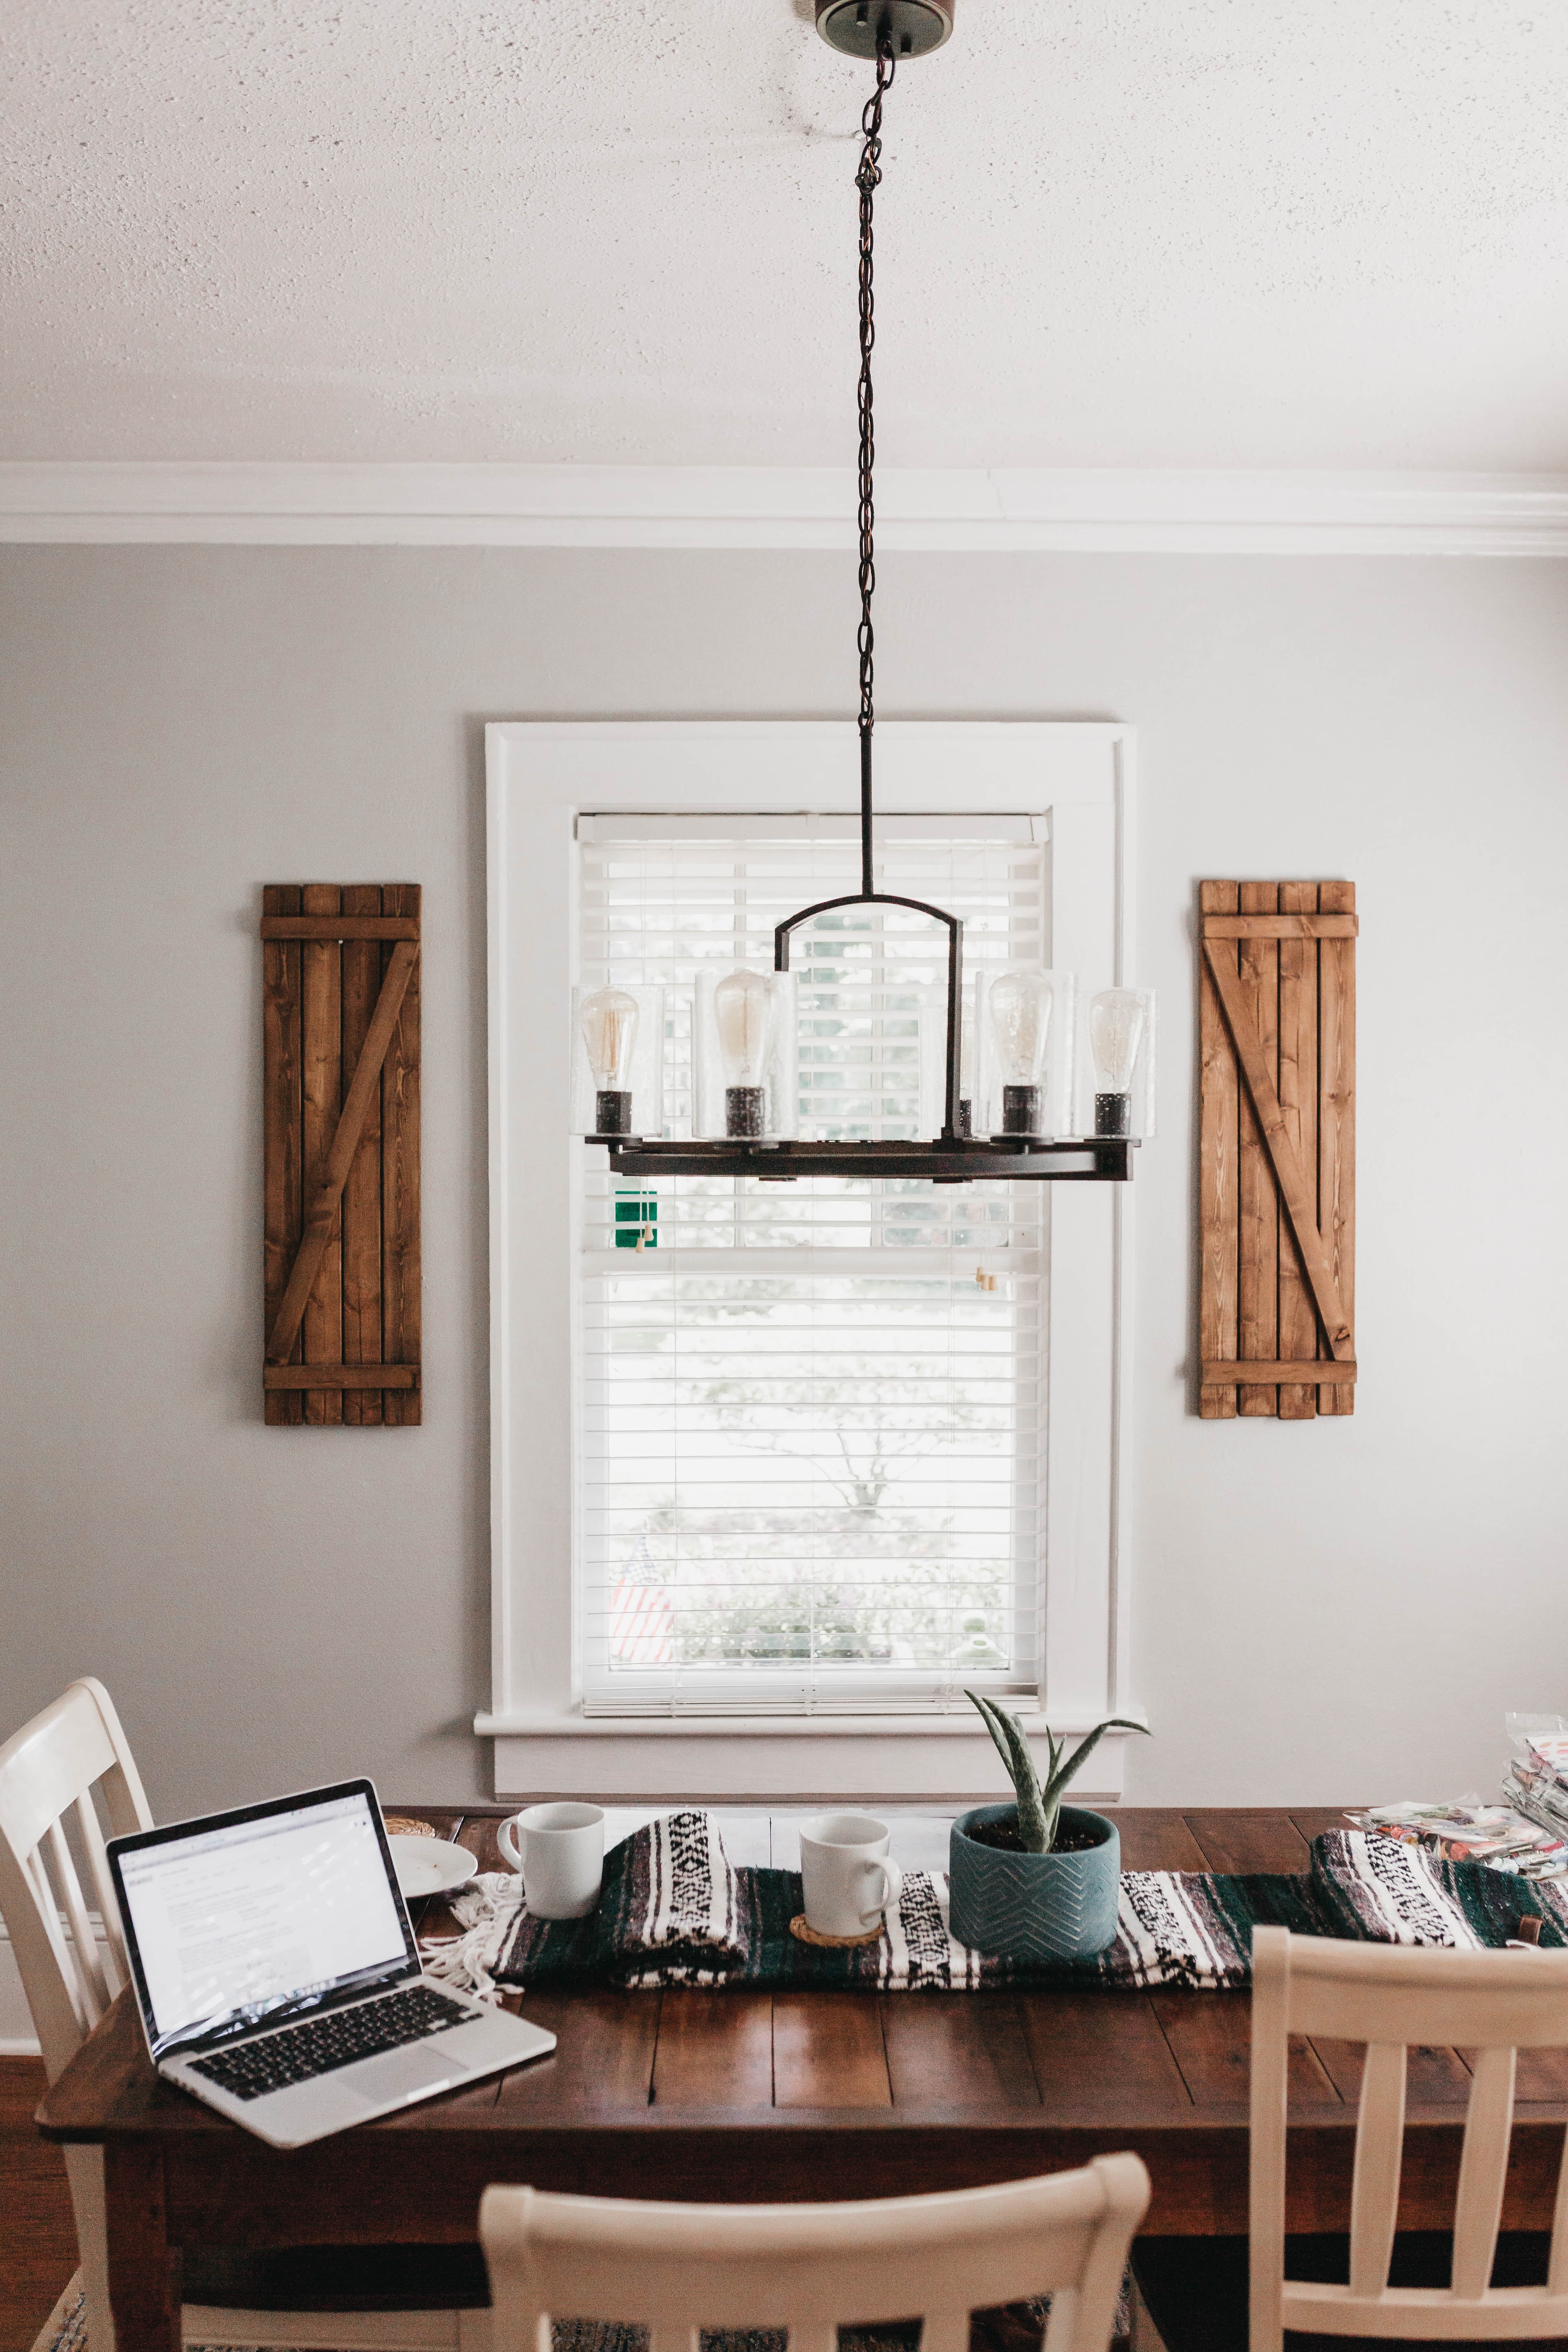 white window trim and blinds